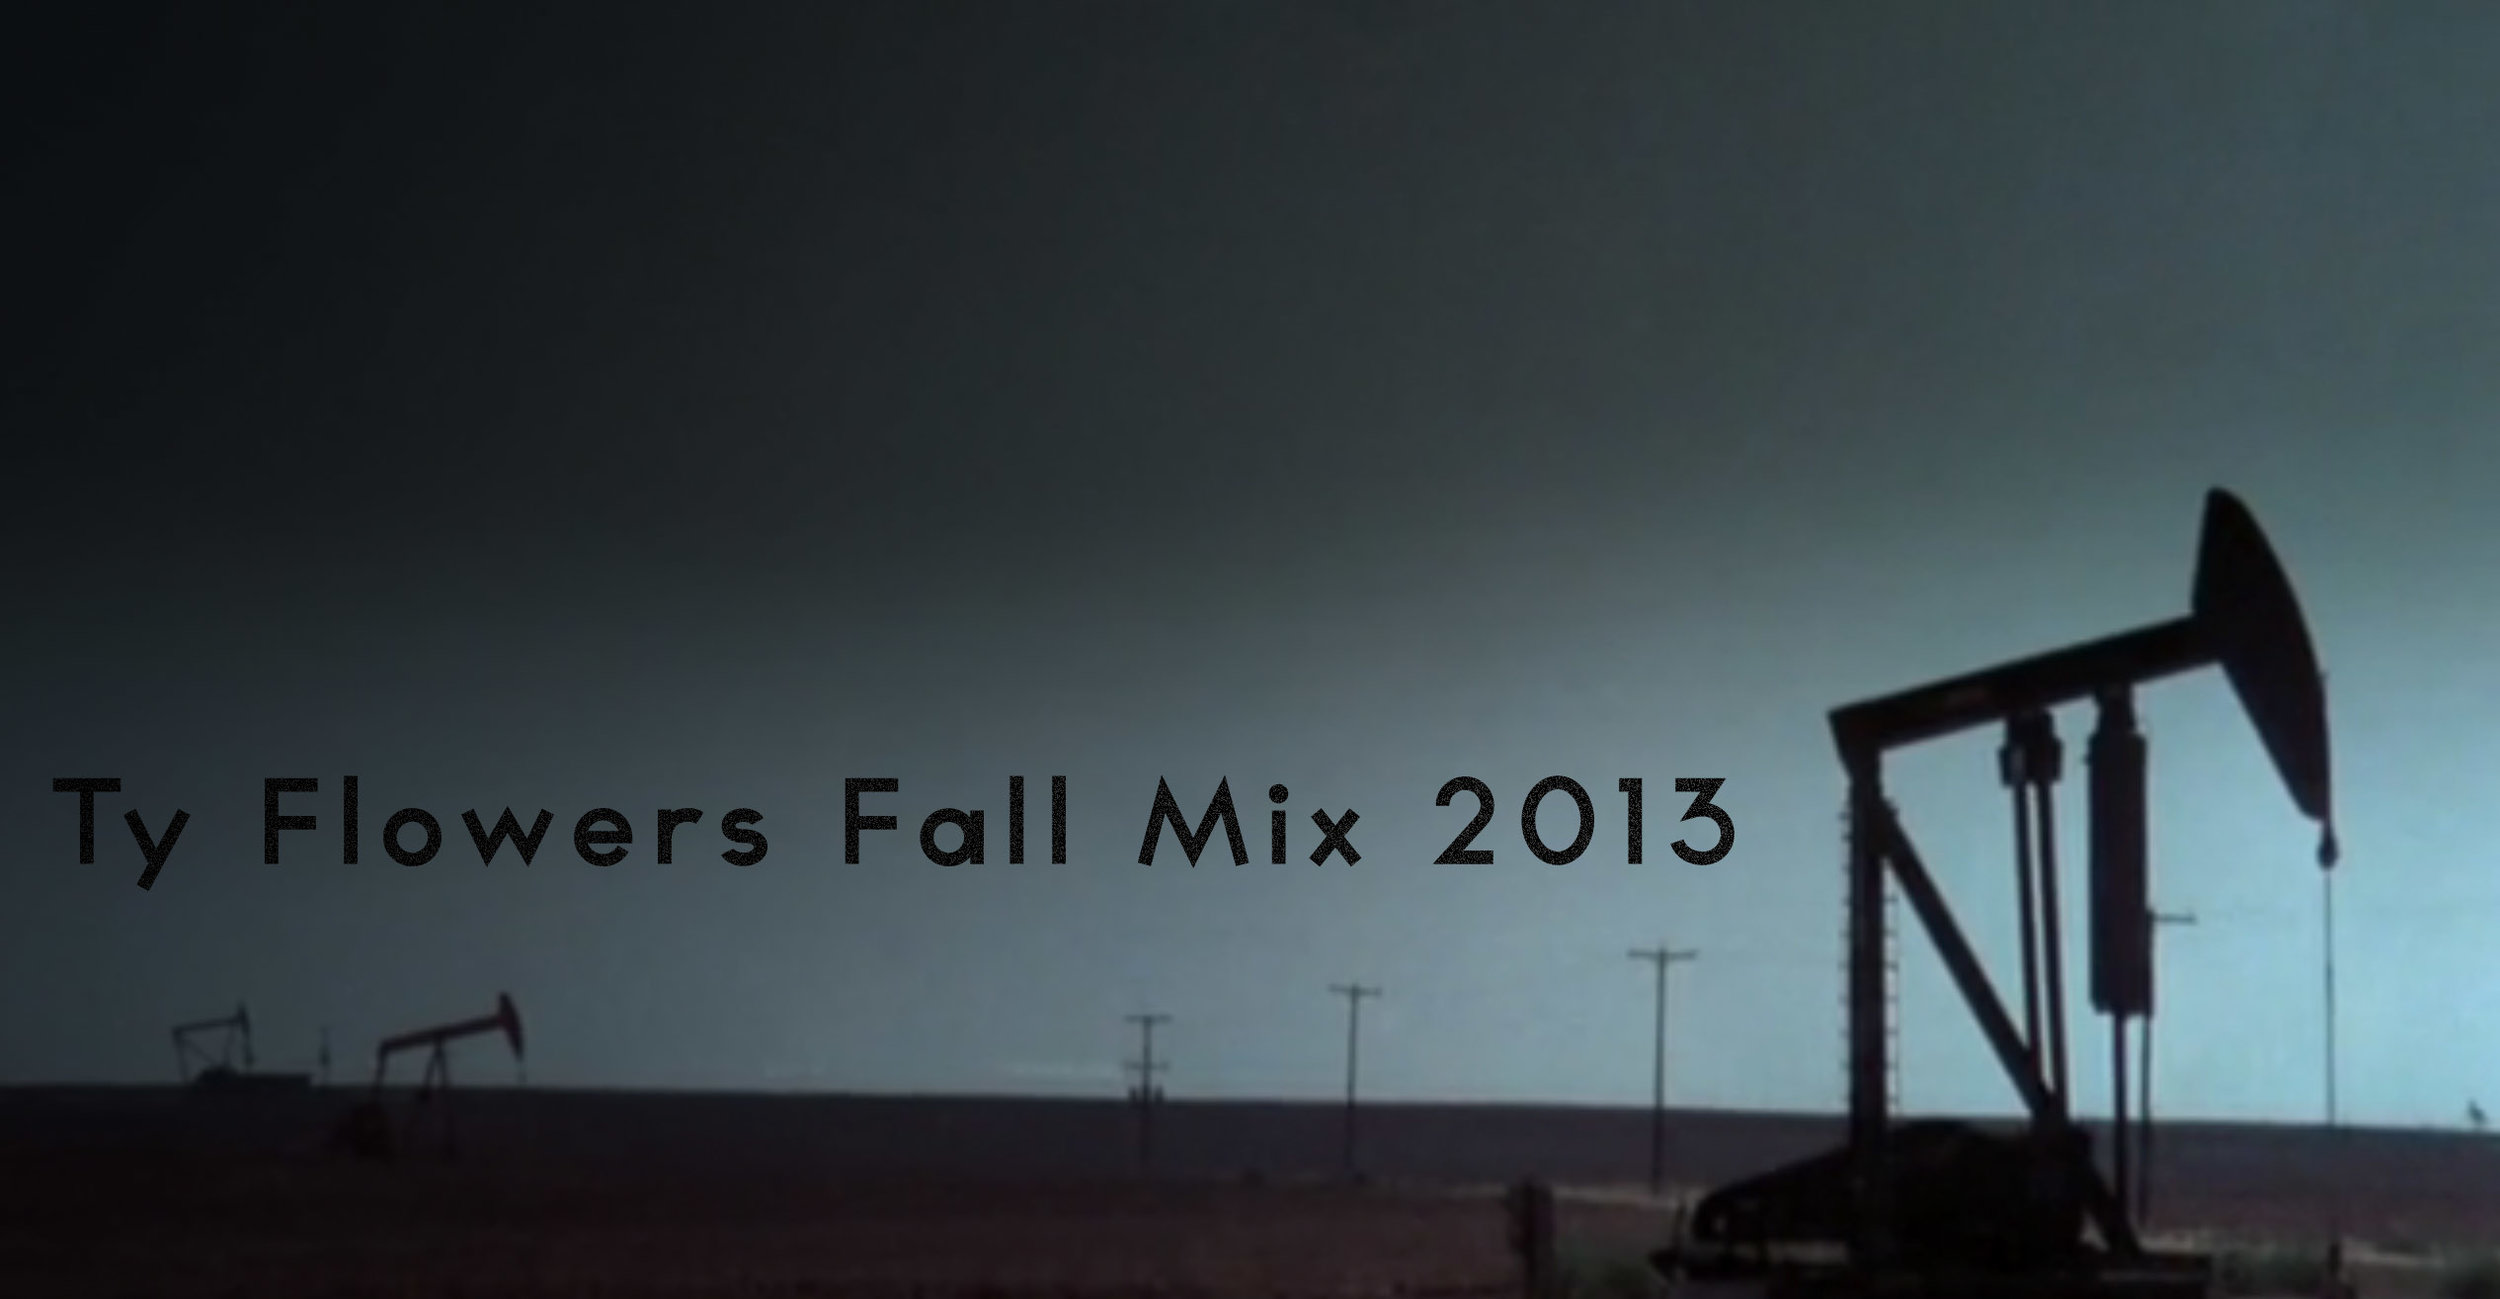 Ty Flowers Fall Mix 2013